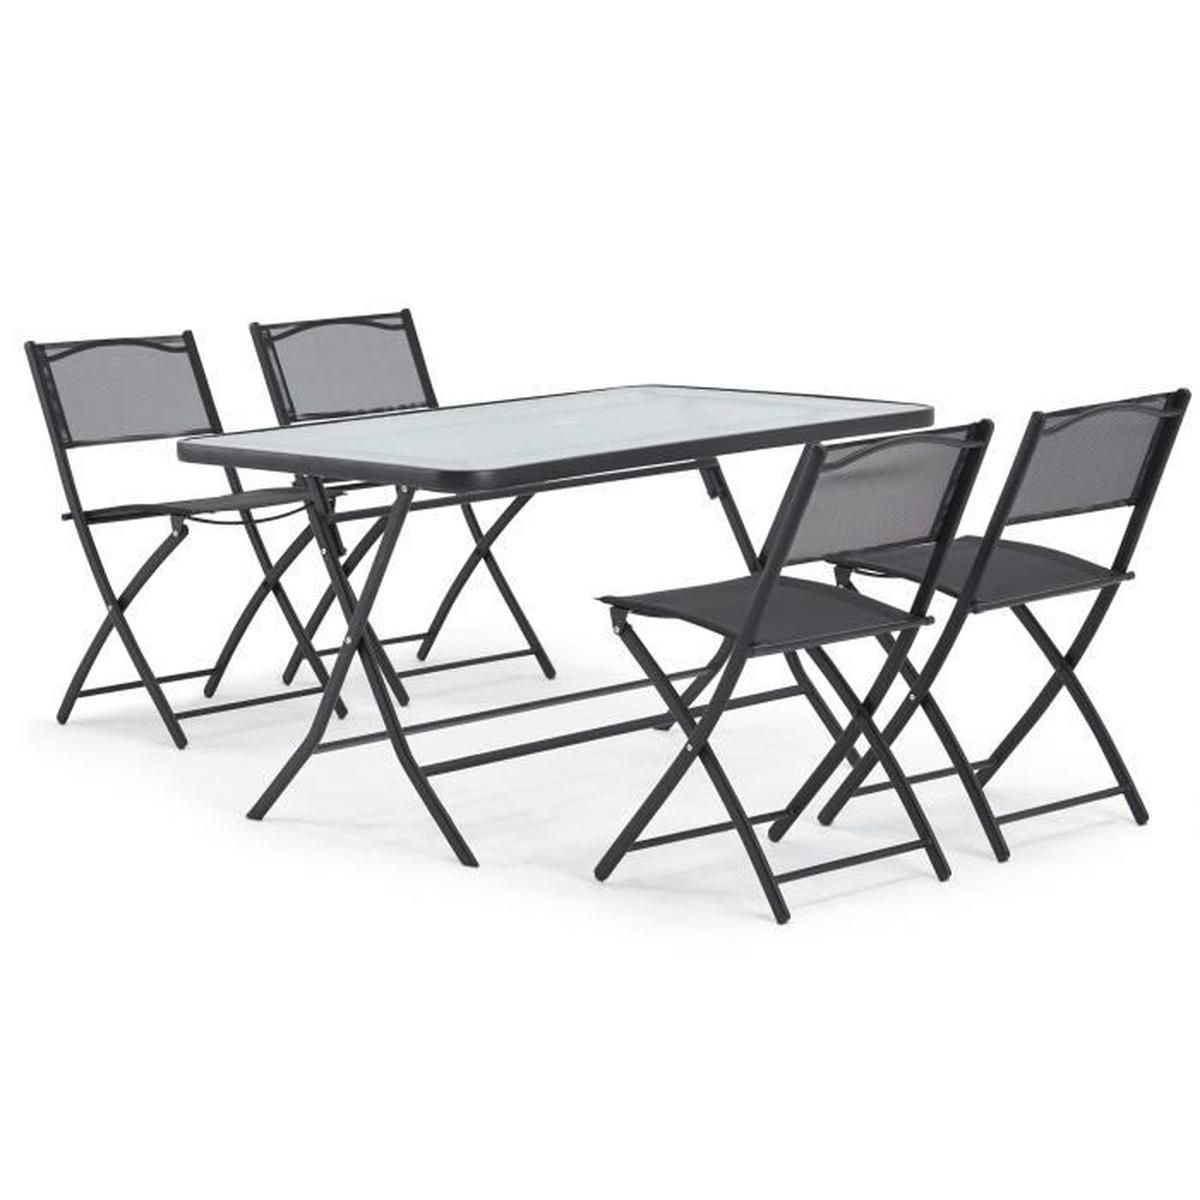 Table Bistrot 4 Personnes Beau Table Terrasse Pas Cher Of 24 Inspirant Table Bistrot 4 Personnes